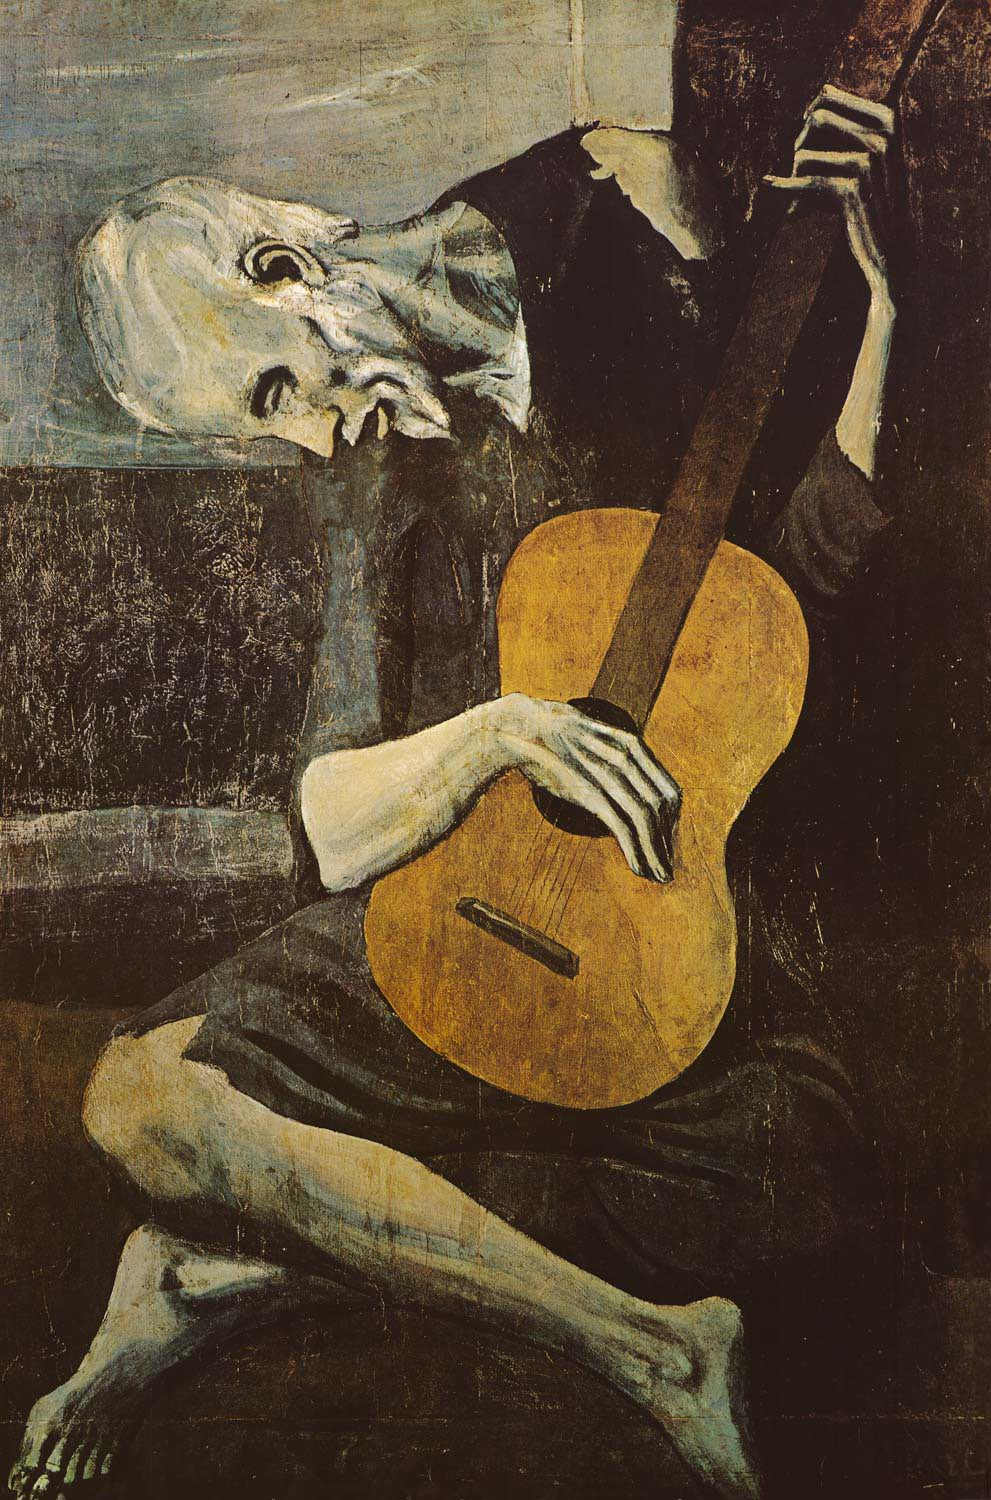 Image of Pablo Picasso The Old Guitarist Art Poster 24x36